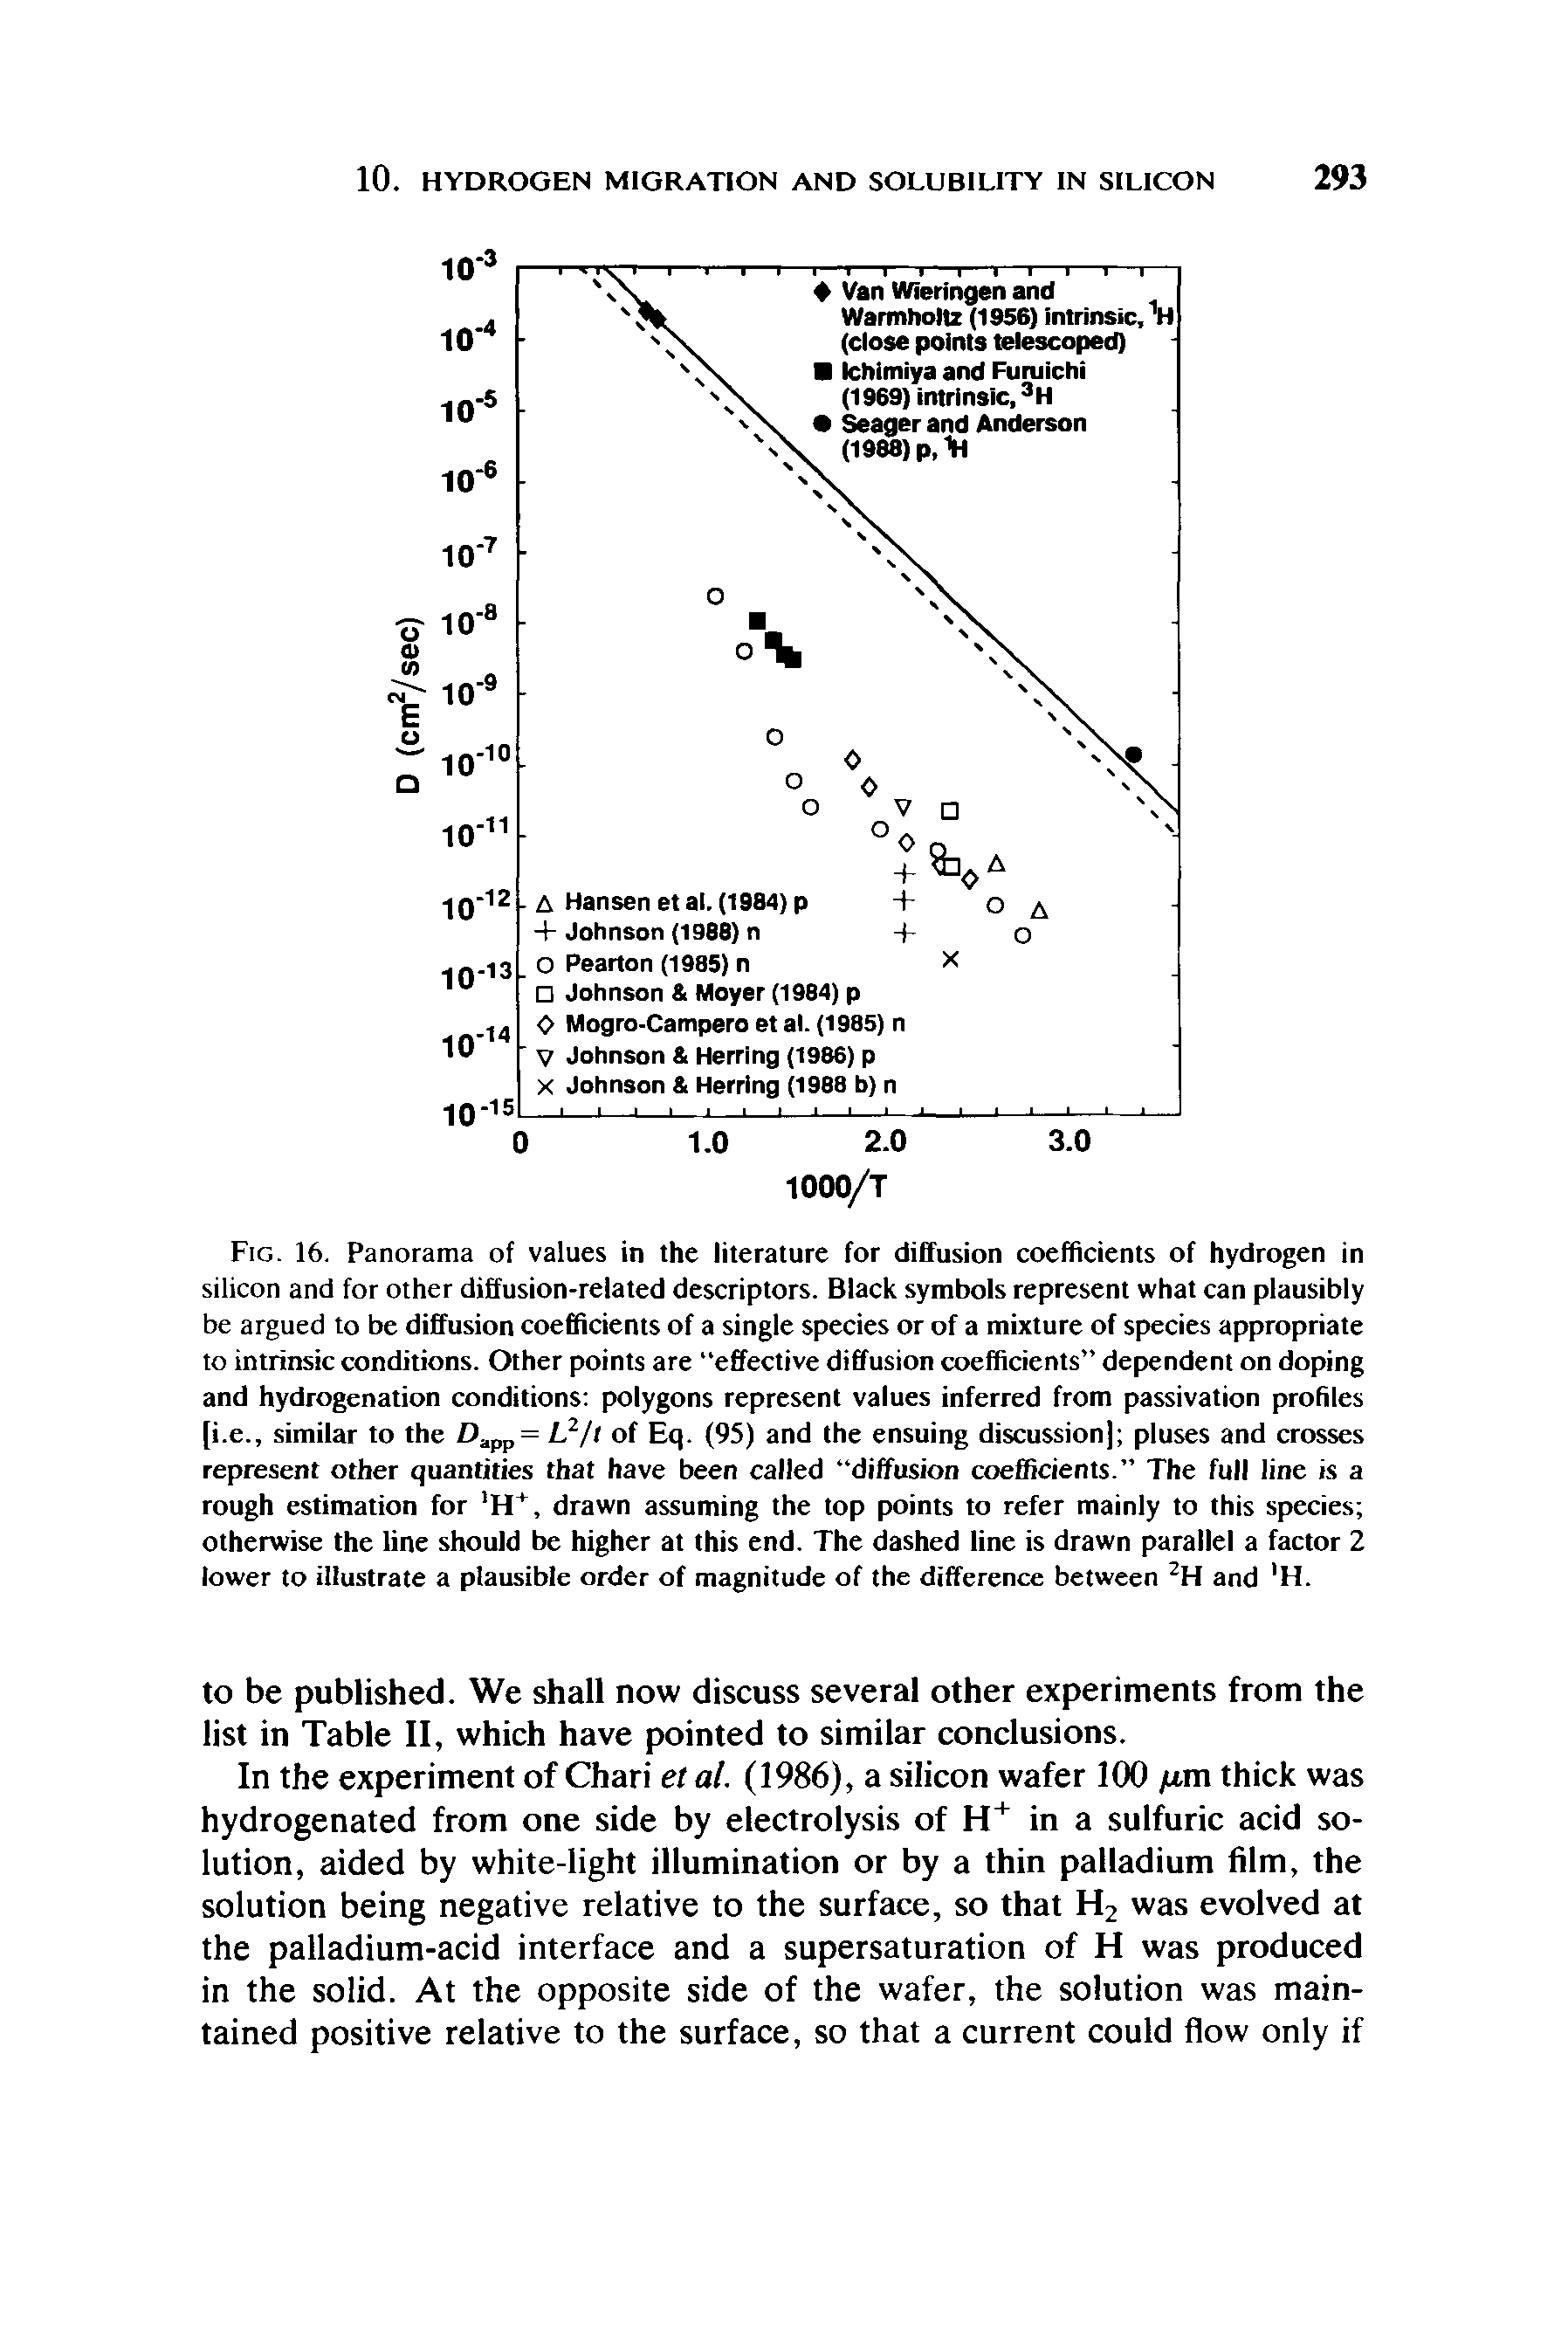 Fig. 16. Panorama of values in the literature for diffusion coefficients of hydrogen in silicon and for other diffusion-related descriptors. Black symbols represent what can plausibly be argued to be diffusion coefficients of a single species or of a mixture of species appropriate to intrinsic conditions. Other points are effective diffusion coefficients dependent on doping and hydrogenation conditions polygons represent values inferred from passivation profiles [i.e., similar to the Dapp = L2/t of Eq. (95) and the ensuing discussion] pluses and crosses represent other quantities that have been called diffusion coefficients. The full line is a rough estimation for H+, drawn assuming the top points to refer mainly to this species otherwise the line should be higher at this end. The dashed line is drawn parallel a factor 2 lower to illustrate a plausible order of magnitude of the difference between 2H and H.